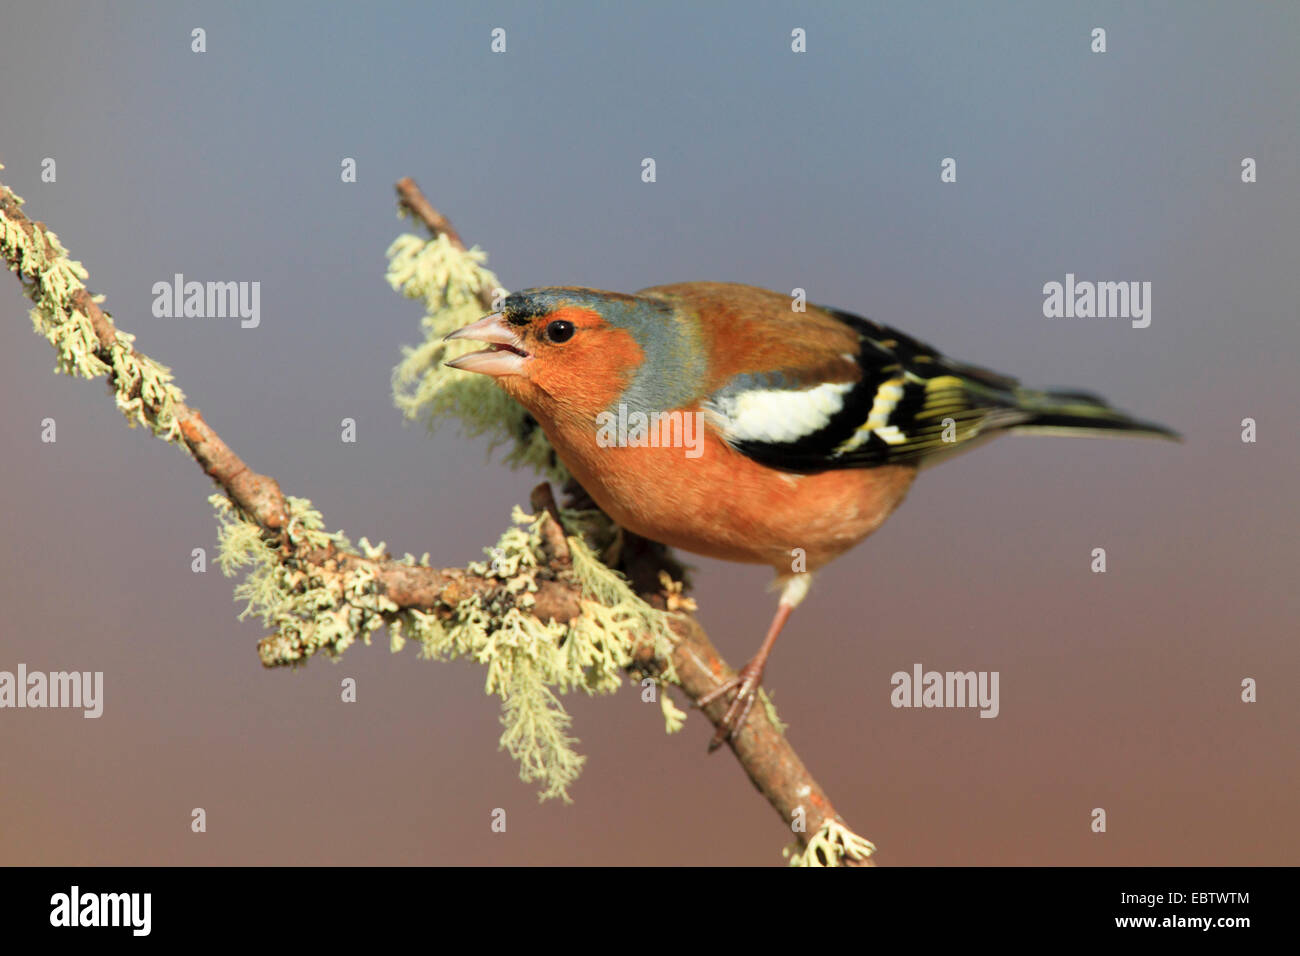 chaffinch (Fringilla coelebs), sitting on branch, United Kingdom, Scotland, Cairngorms National Park - Stock Image